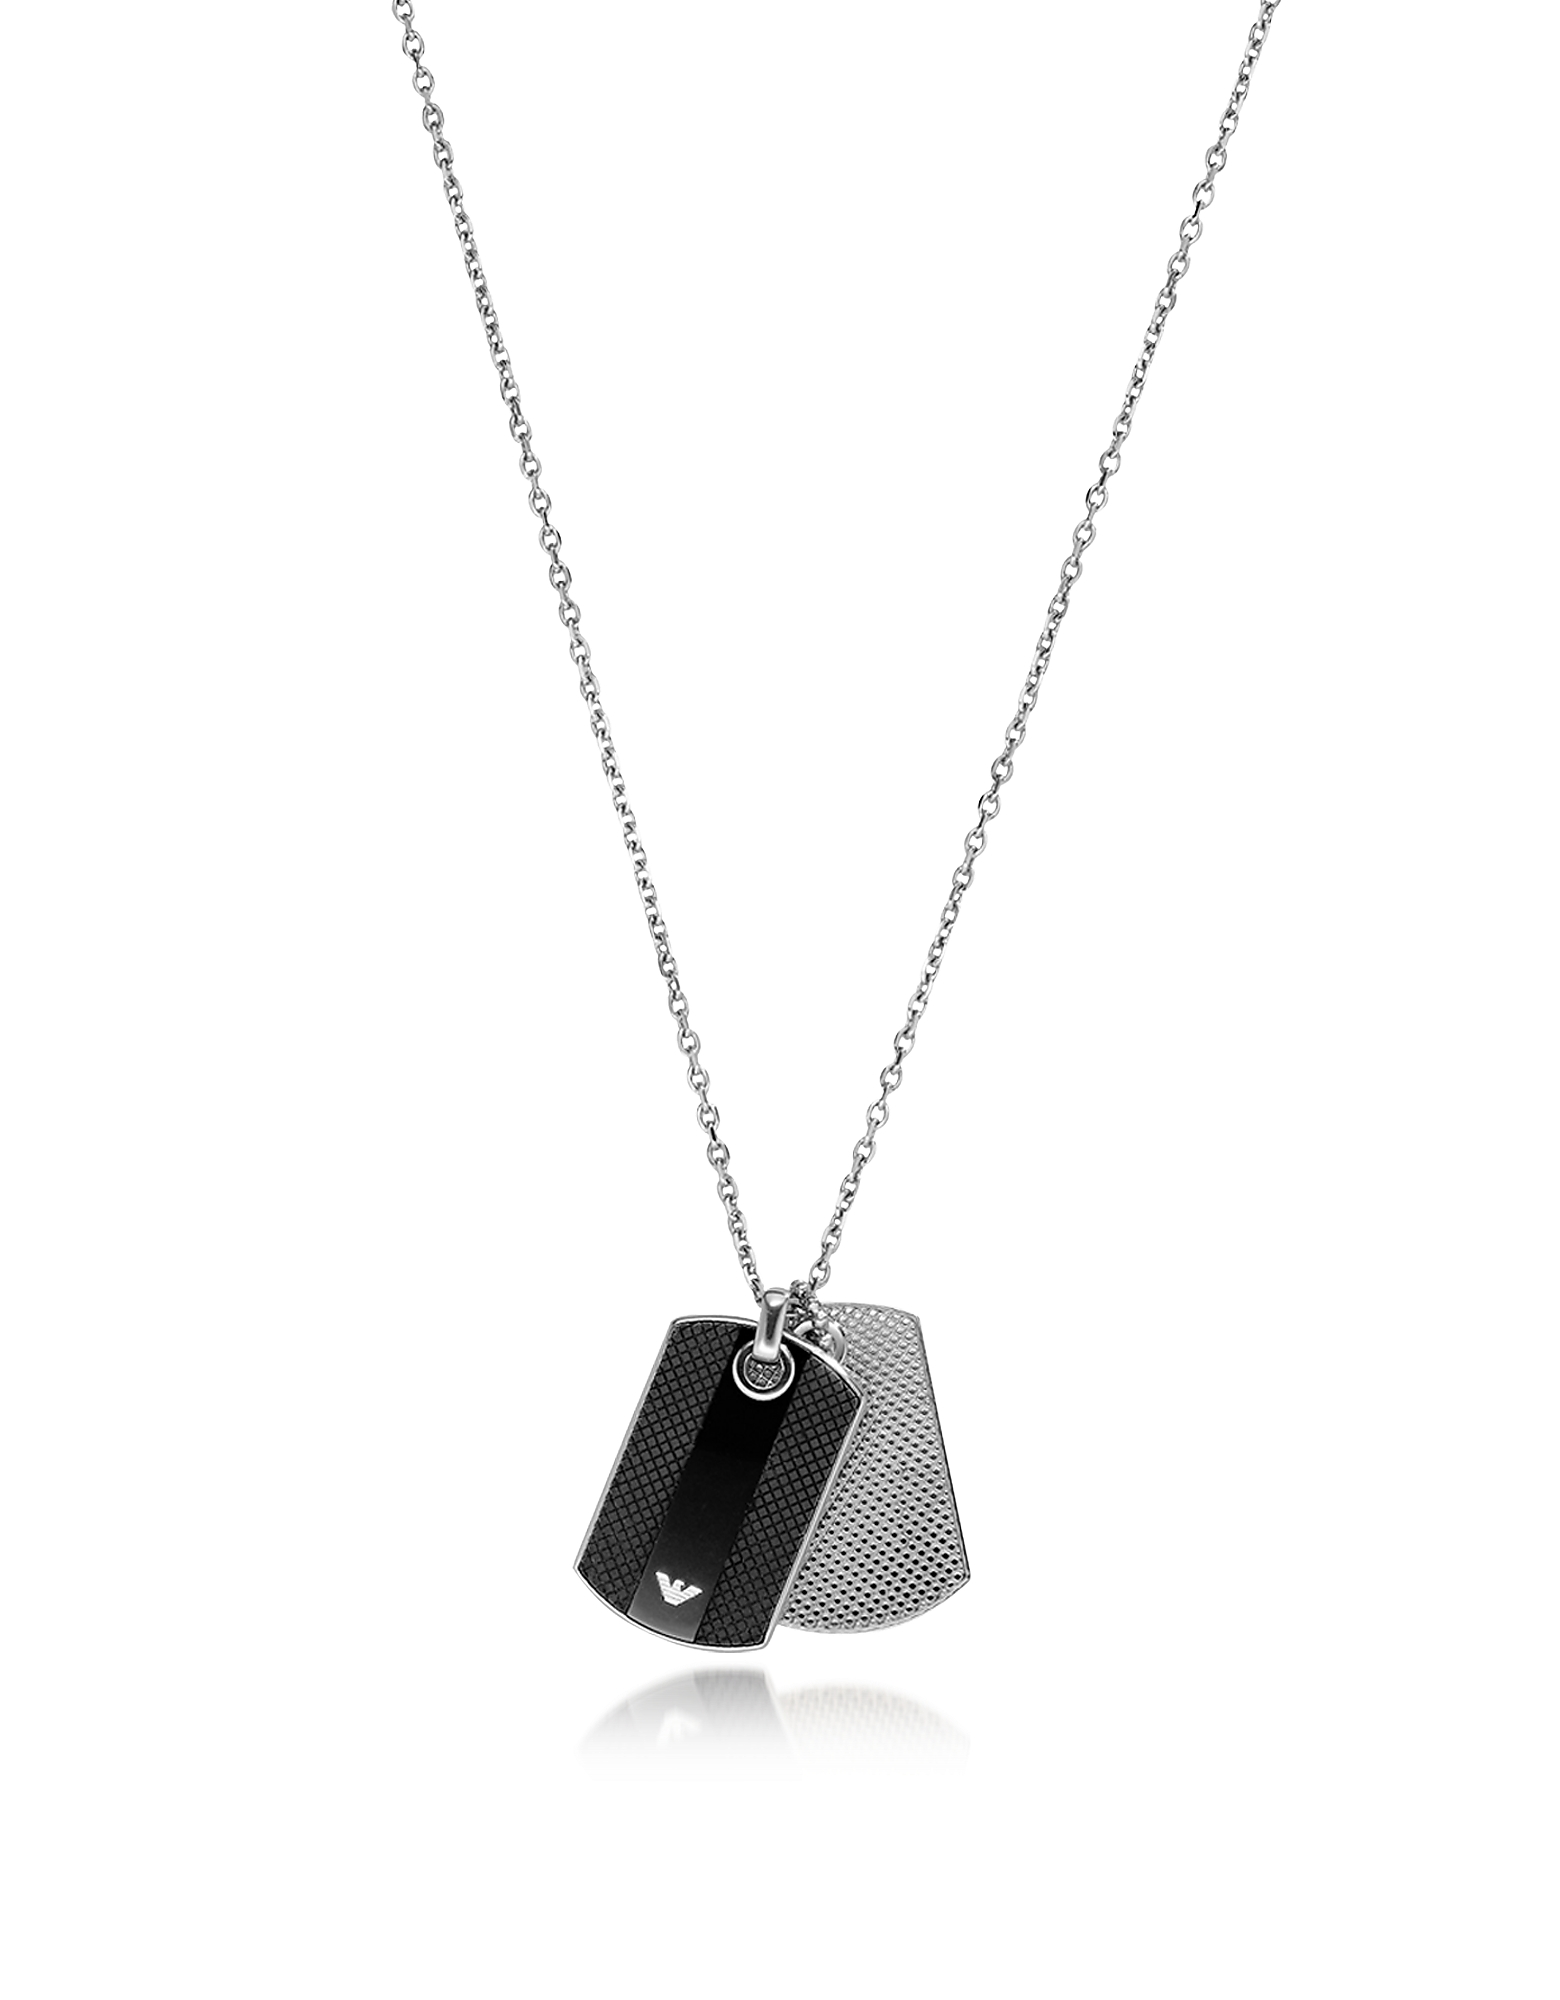 Iconic Black and Silver Stainless Steel Charm Men's Necklace от Forzieri.com INT